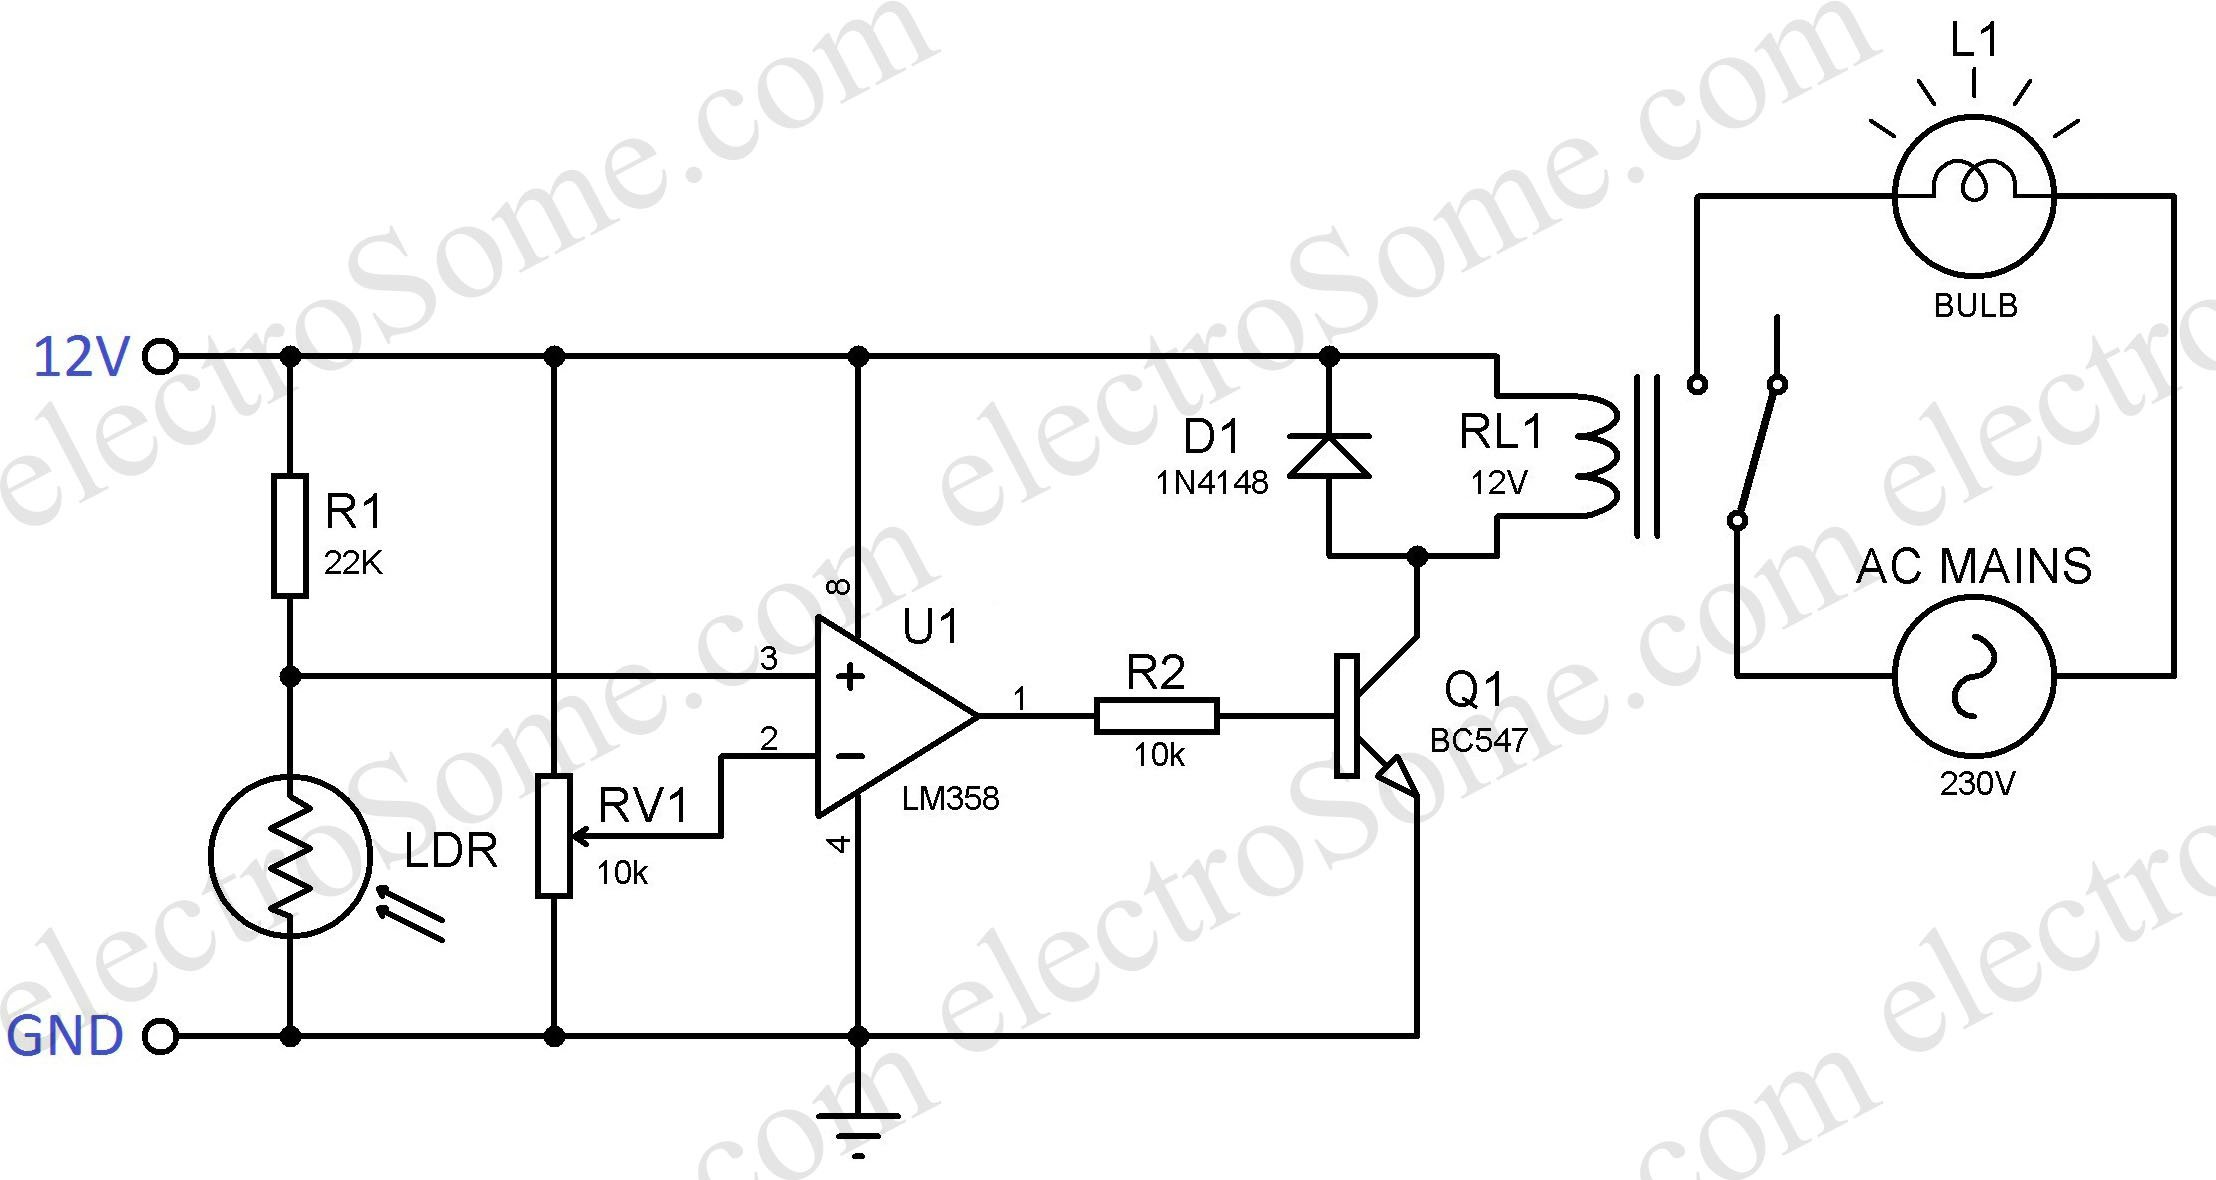 Automatic Night Lamp Using Ldr 555 Bistable Breadboard Basic Toggle Circuit Built On Diagram